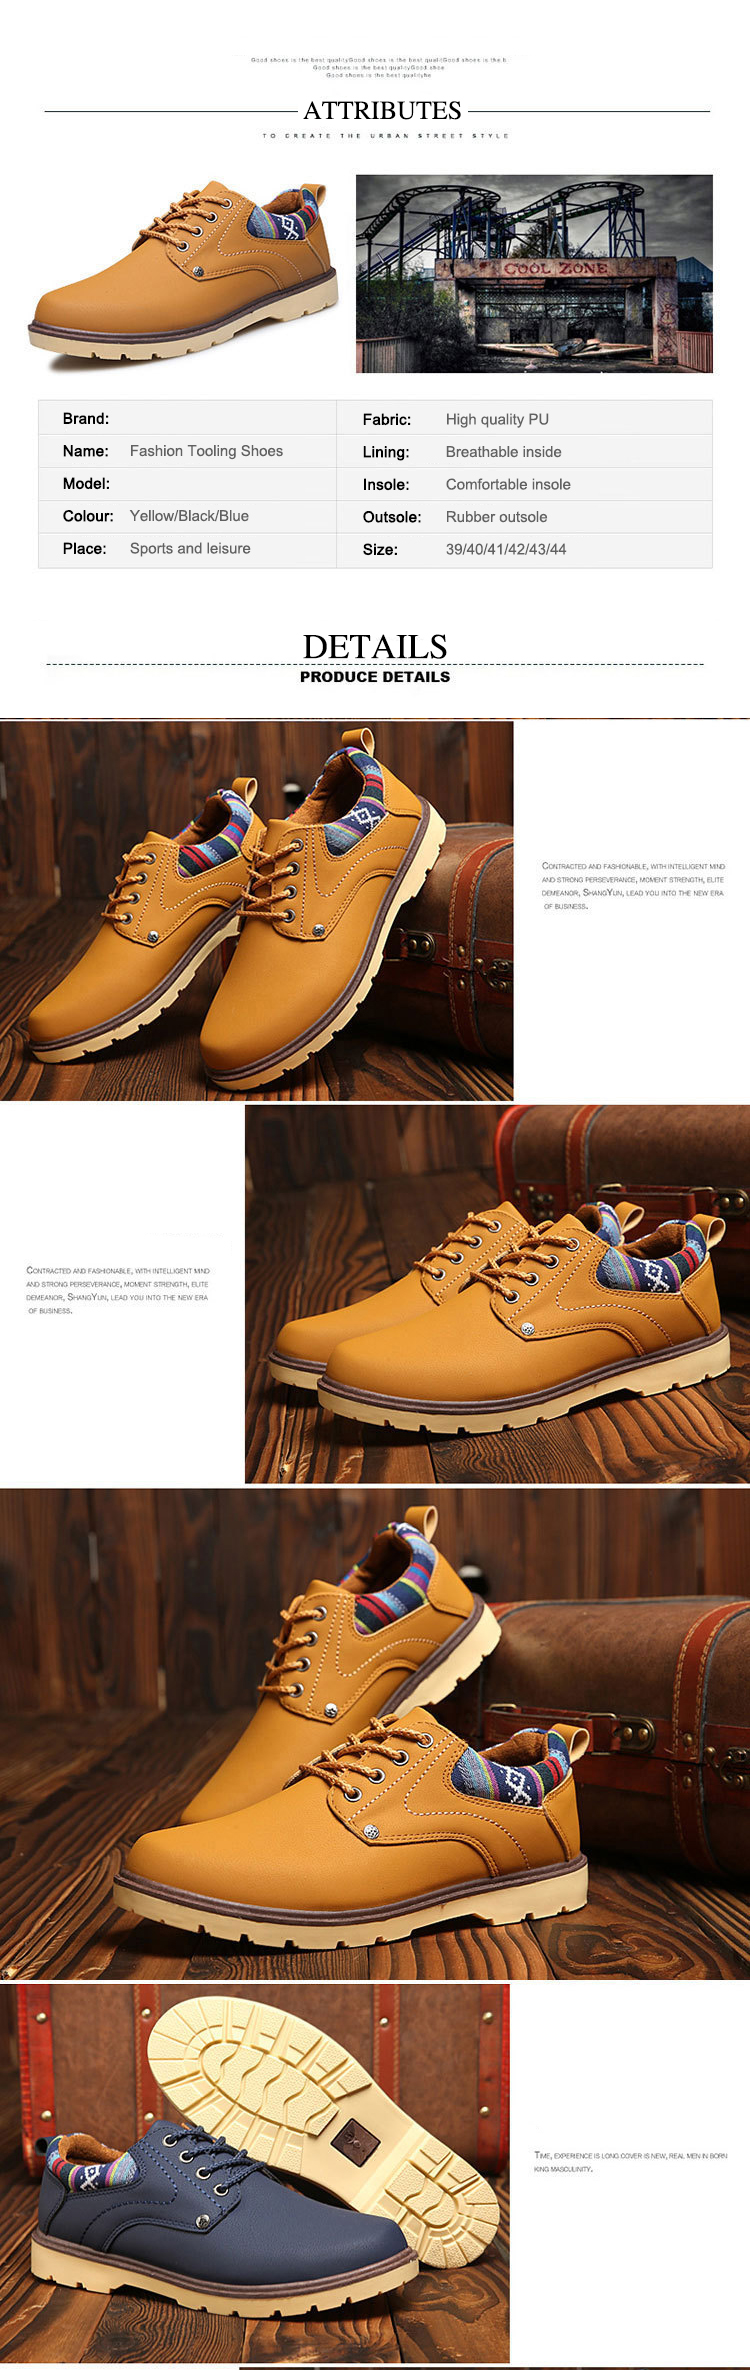 Men's Boots Persevering New Fashion Men Big Size Steel Toe Covers Working Safety Shoes Anti-puncture Worker Sneakers Security Boots Protective Footwear